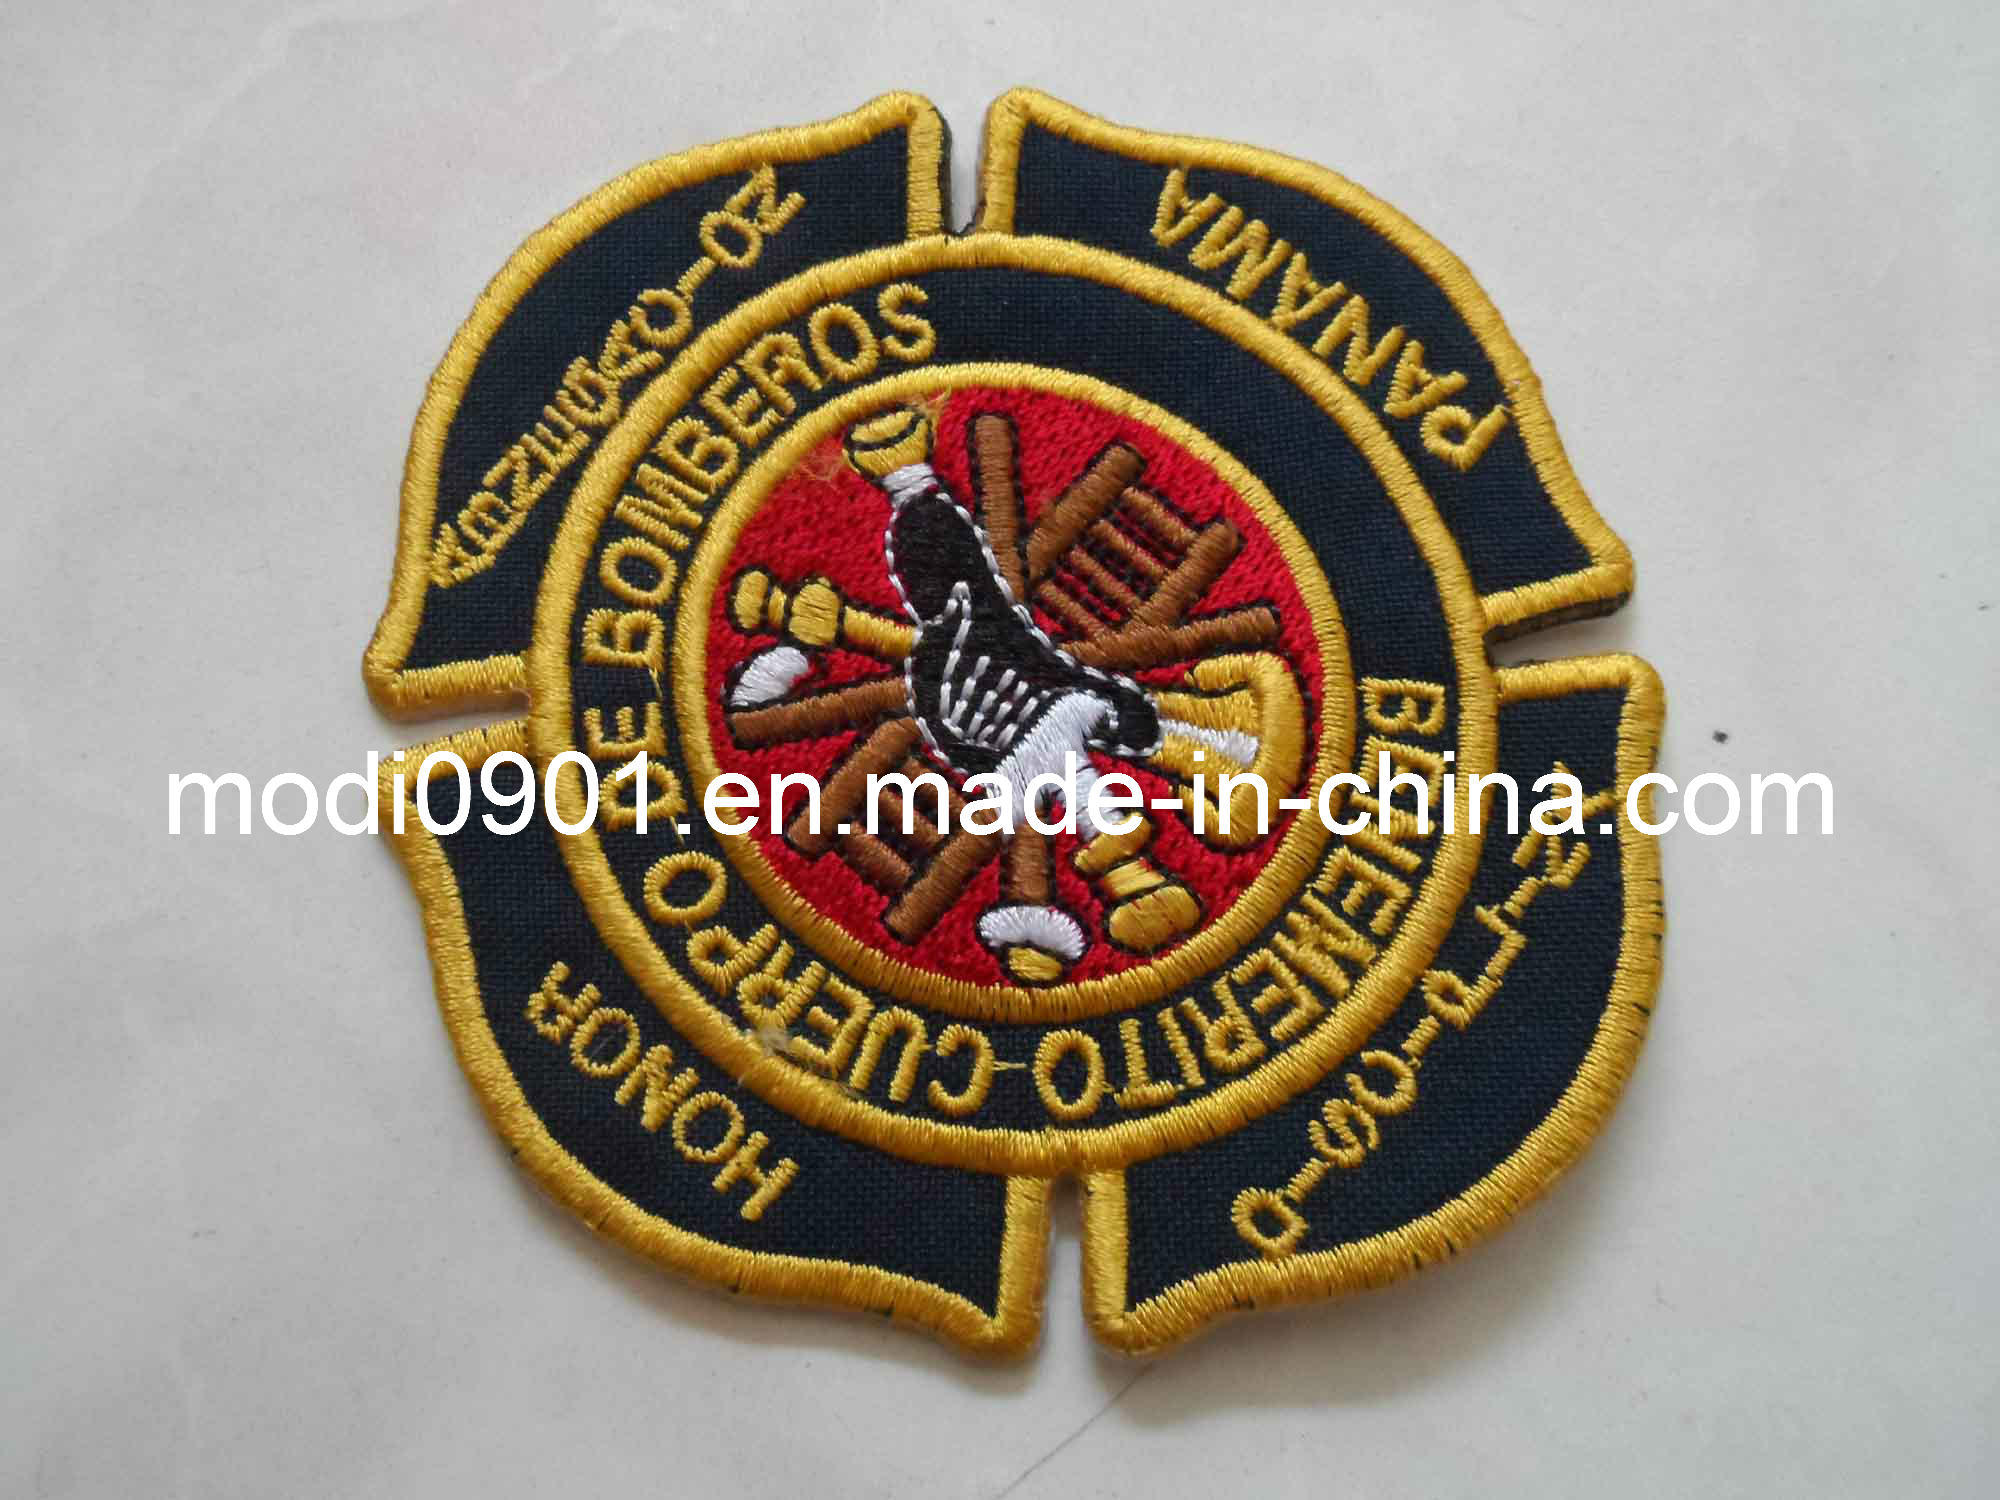 3D Embroidery Badge/Patch + Flocking Heat Transfer for Football Wear/Soccer Jersey Heat Press Patches Embroidery Patch-Garment Label